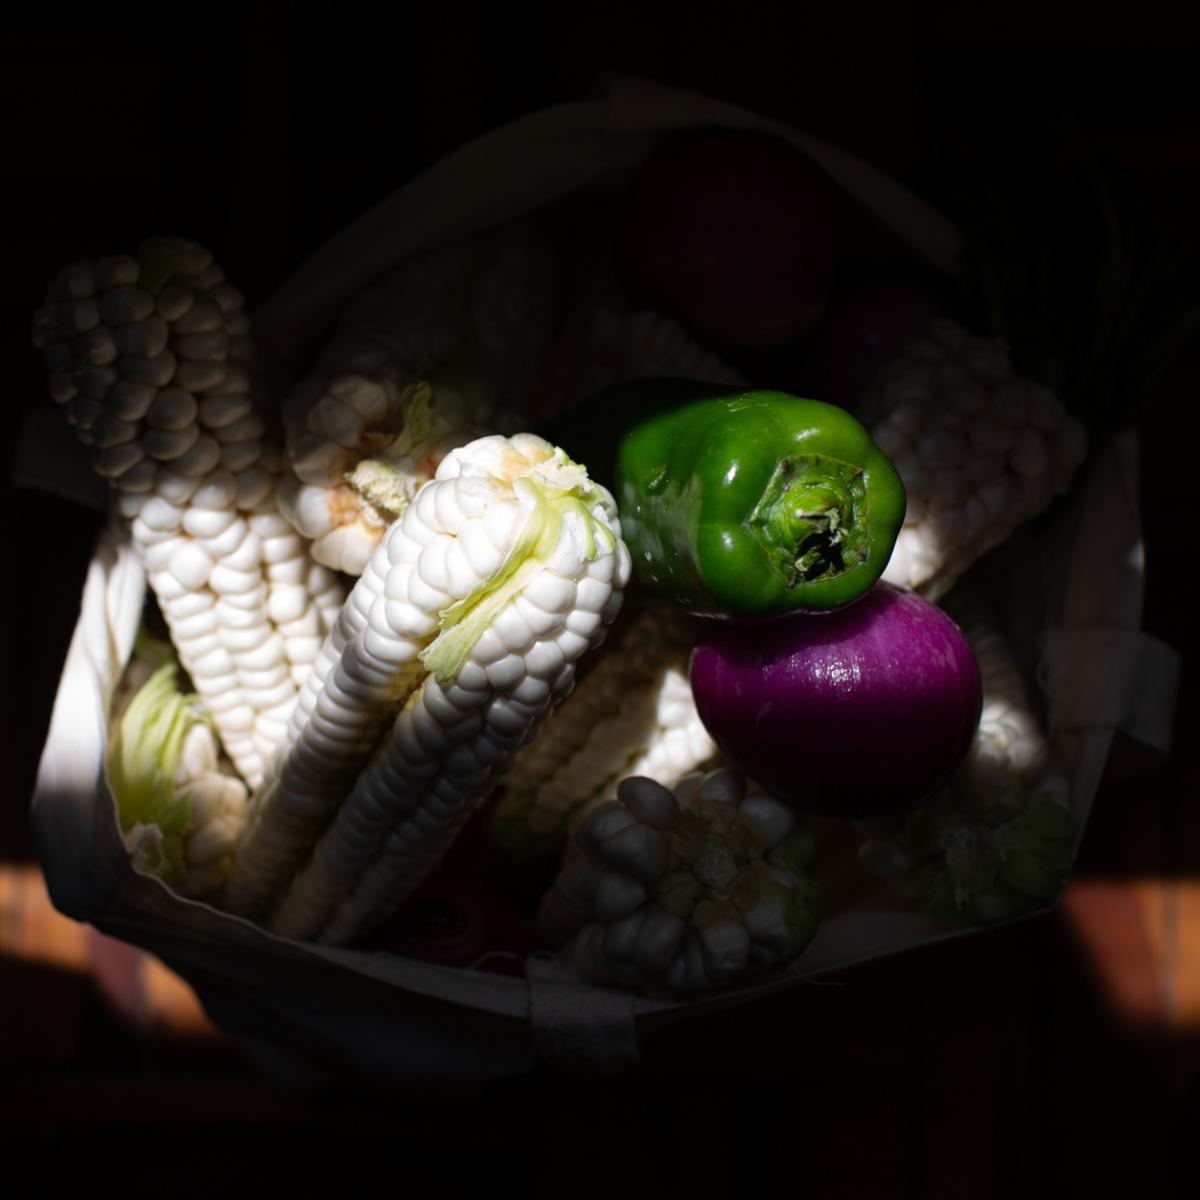 Barreto and her family receive weekly donations of vegetables and grains from charity groups. Before the pandemic, the family had a balanced diet, she says they could buy meat and fish on a daily basis. Now that's a once-a-week treat.